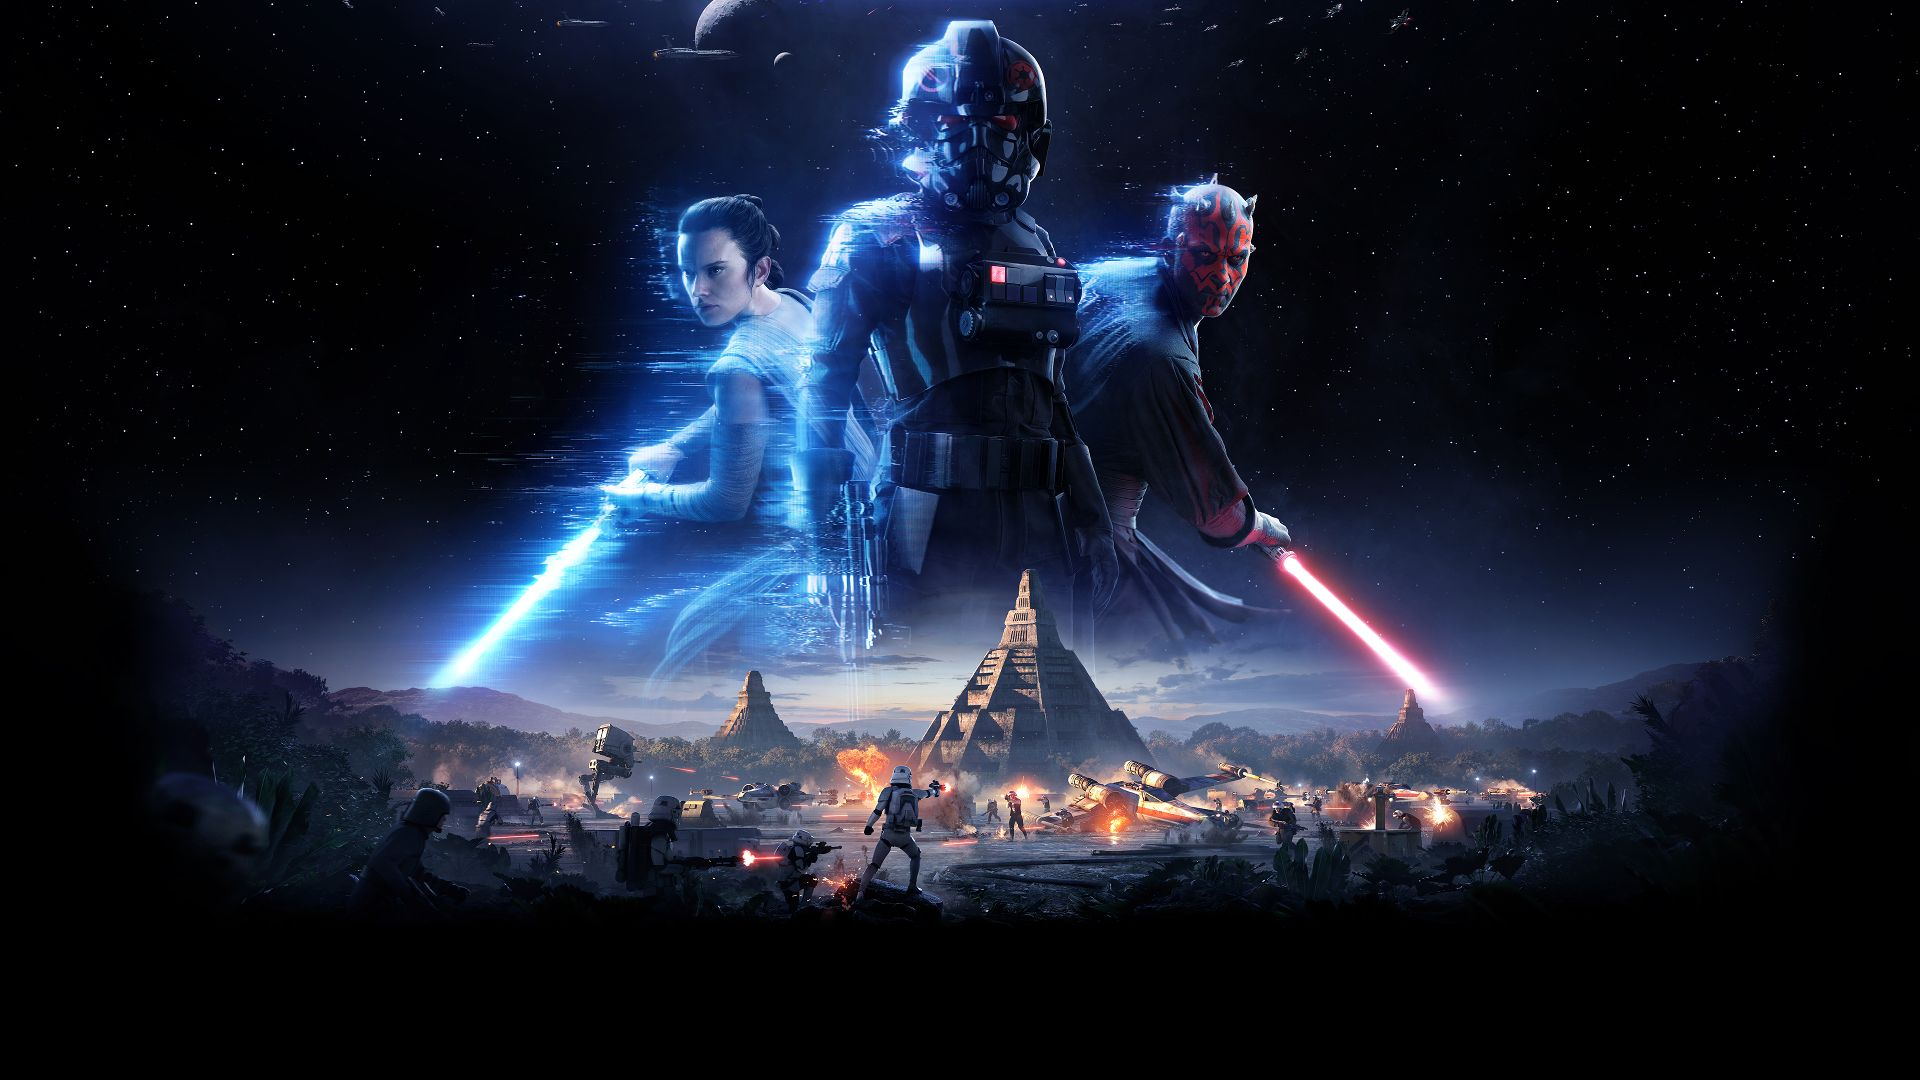 Star Wars Battlefront II asks for the benefit of the doubt screenshot